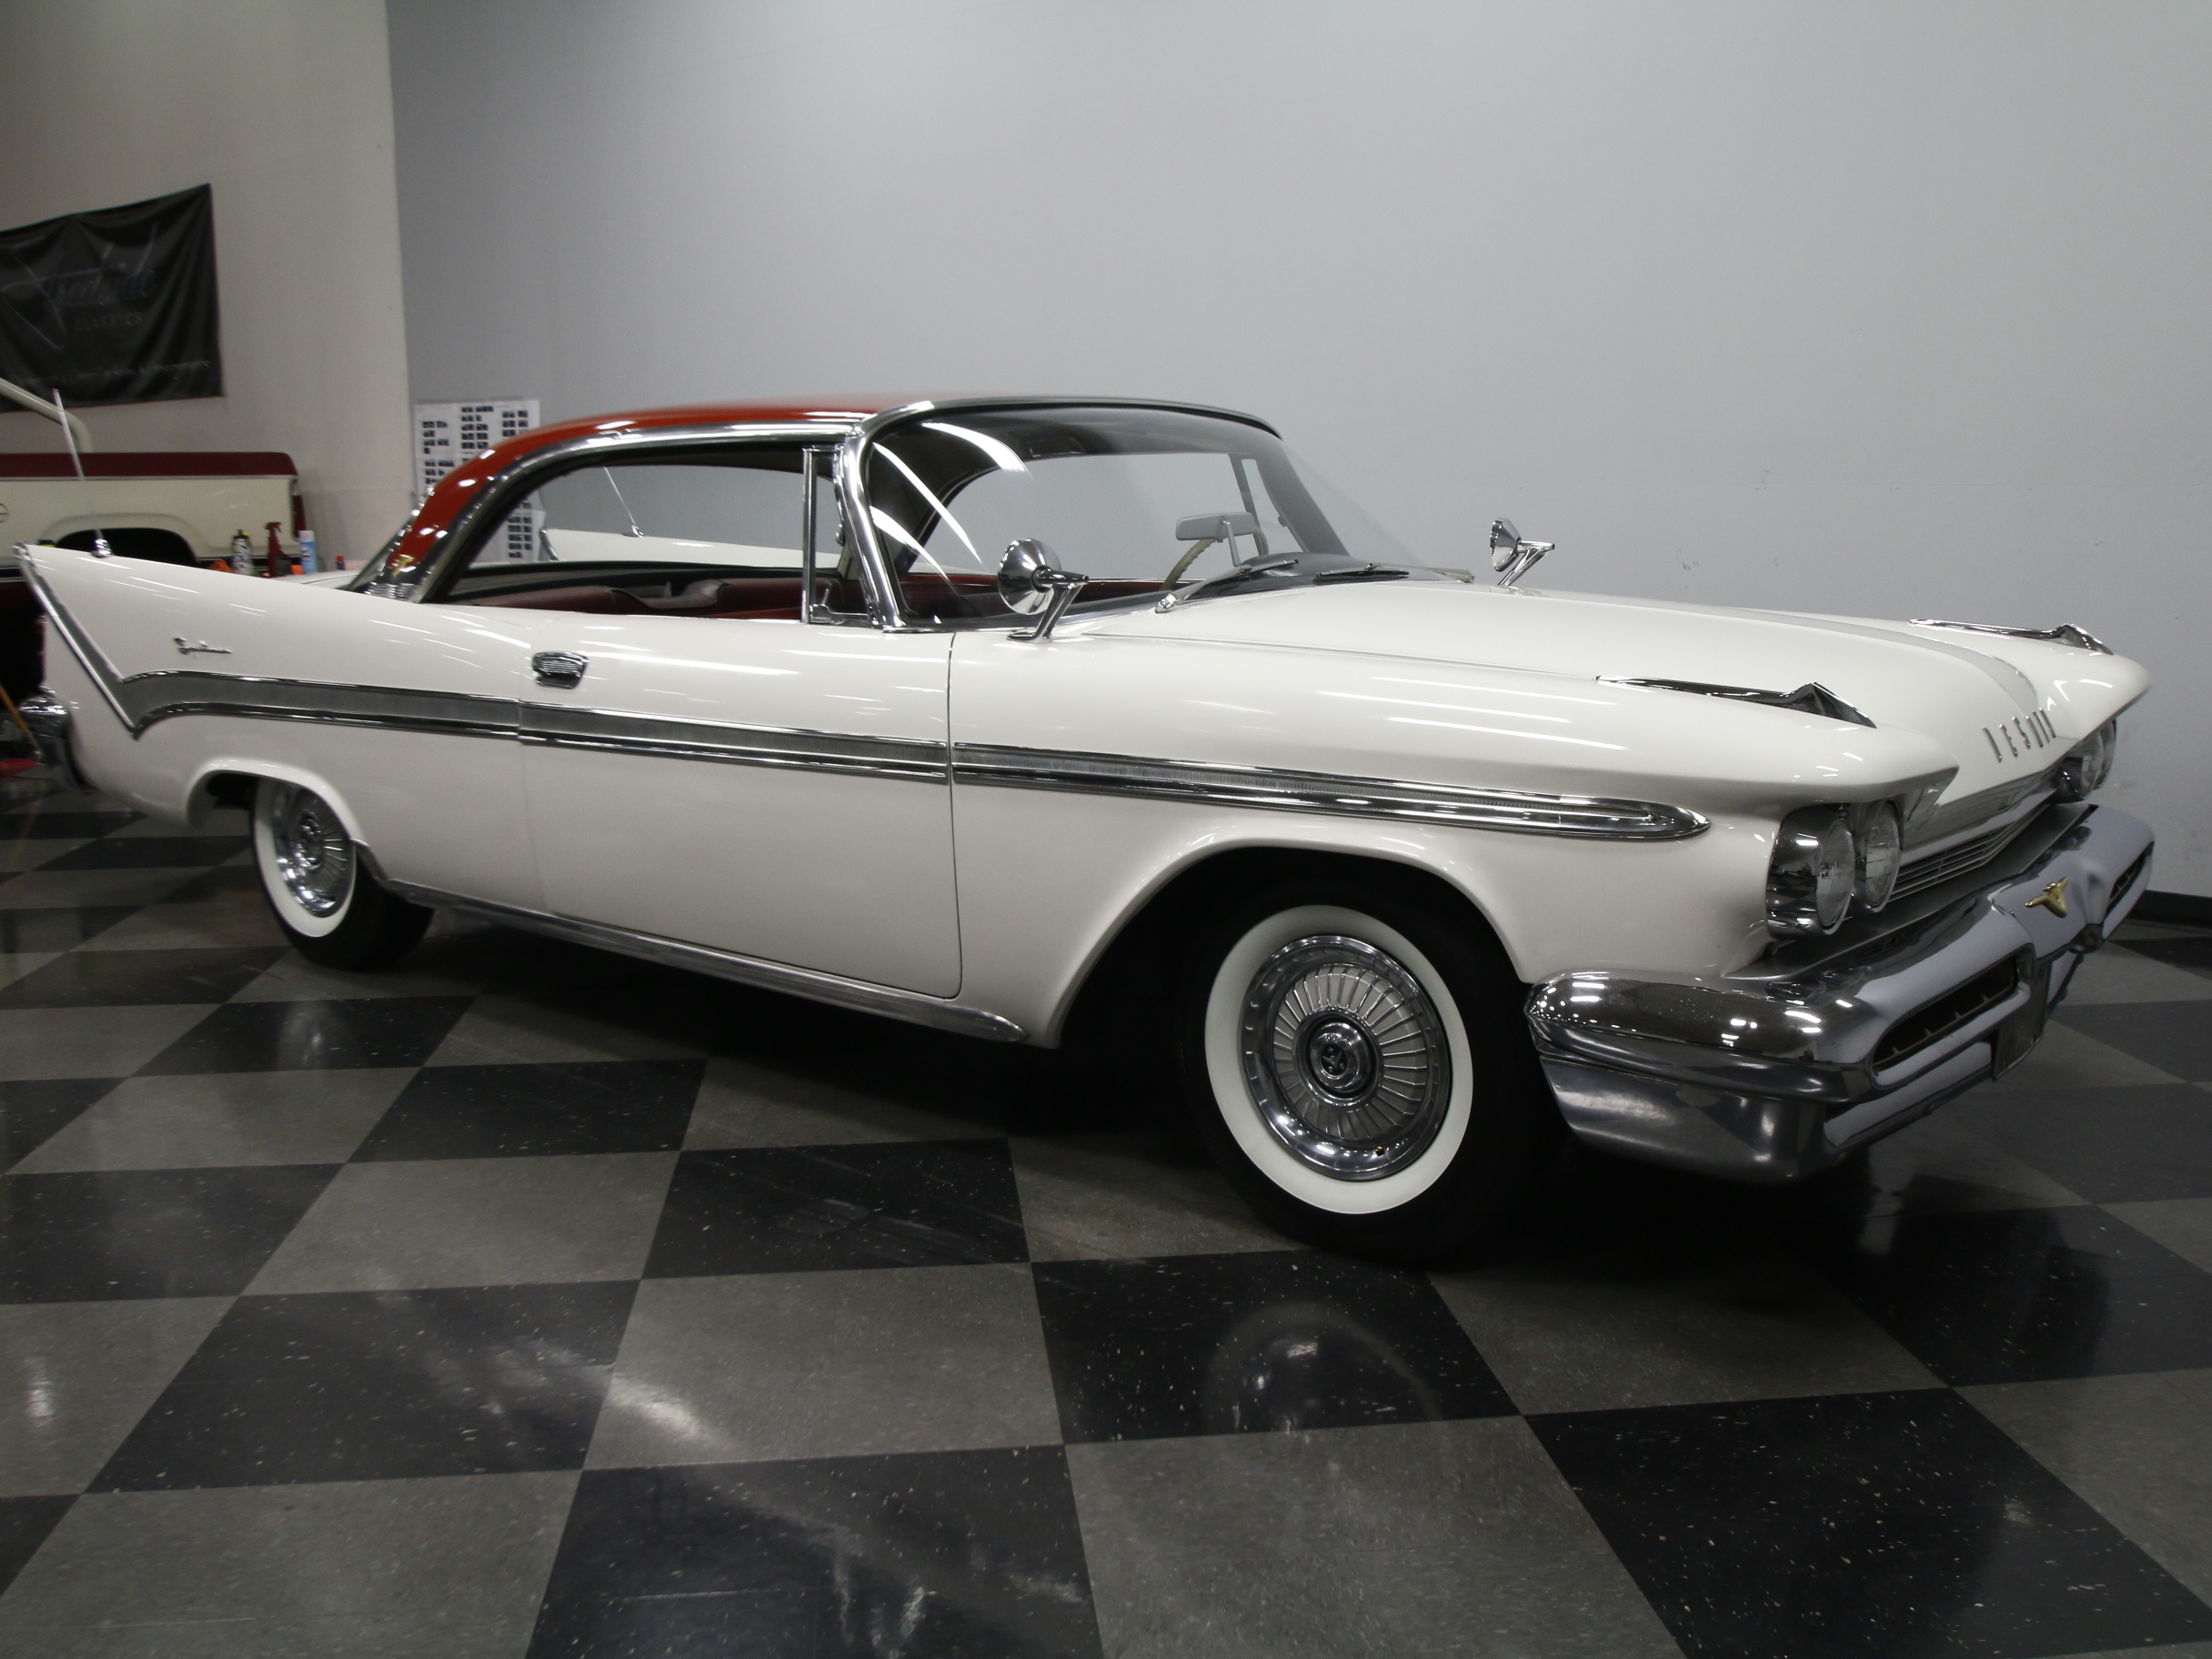 1959 DeSoto Firesweep : RARE BEAST, BELIEVED ORIG. 361 V8, PUSH BUTTON AUTO, SUPER SOLID/STRAIGHT/CLEAN!